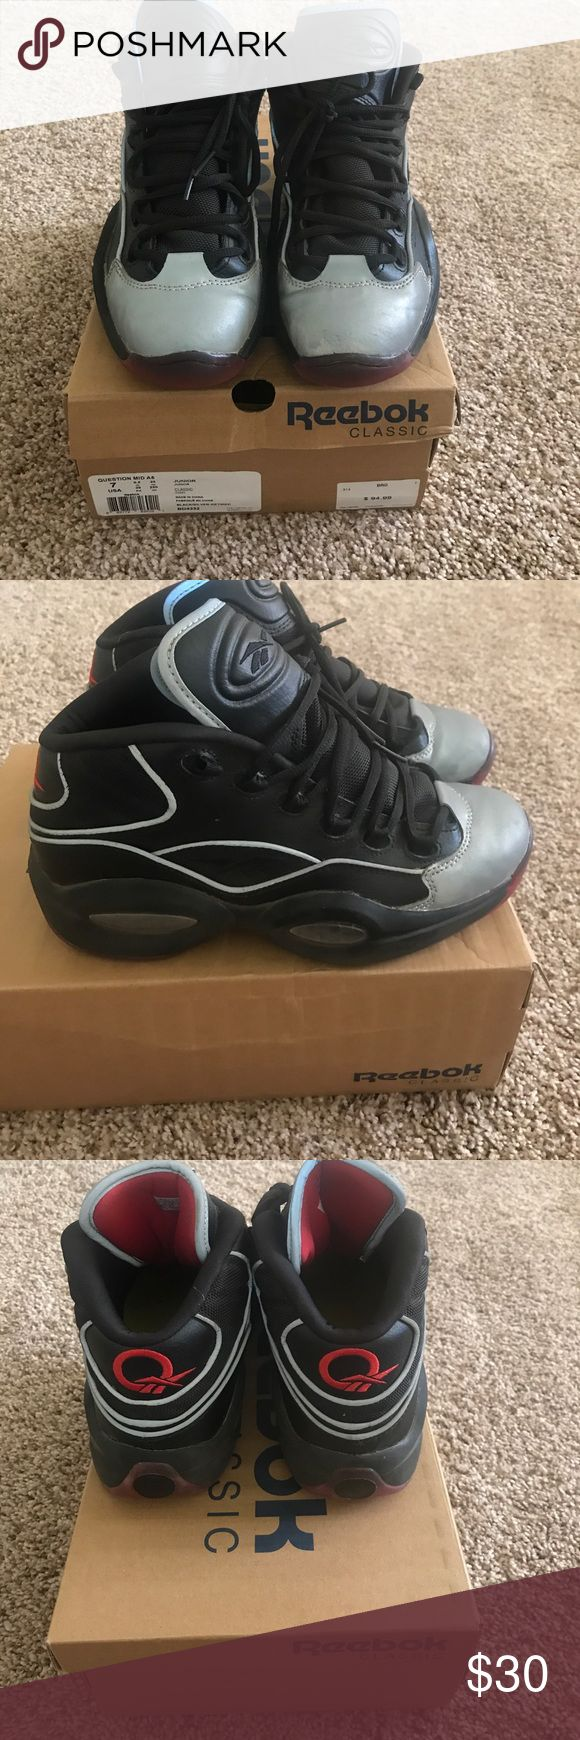 Reebok Question Mid A5 Iverson The Question basketball shoes. Black/silver metallic/red. Toe has a reflective silver finish. Shoes have only been worn a few times. Soles are intact, shoe is practically new. Reebok Shoes Sneakers